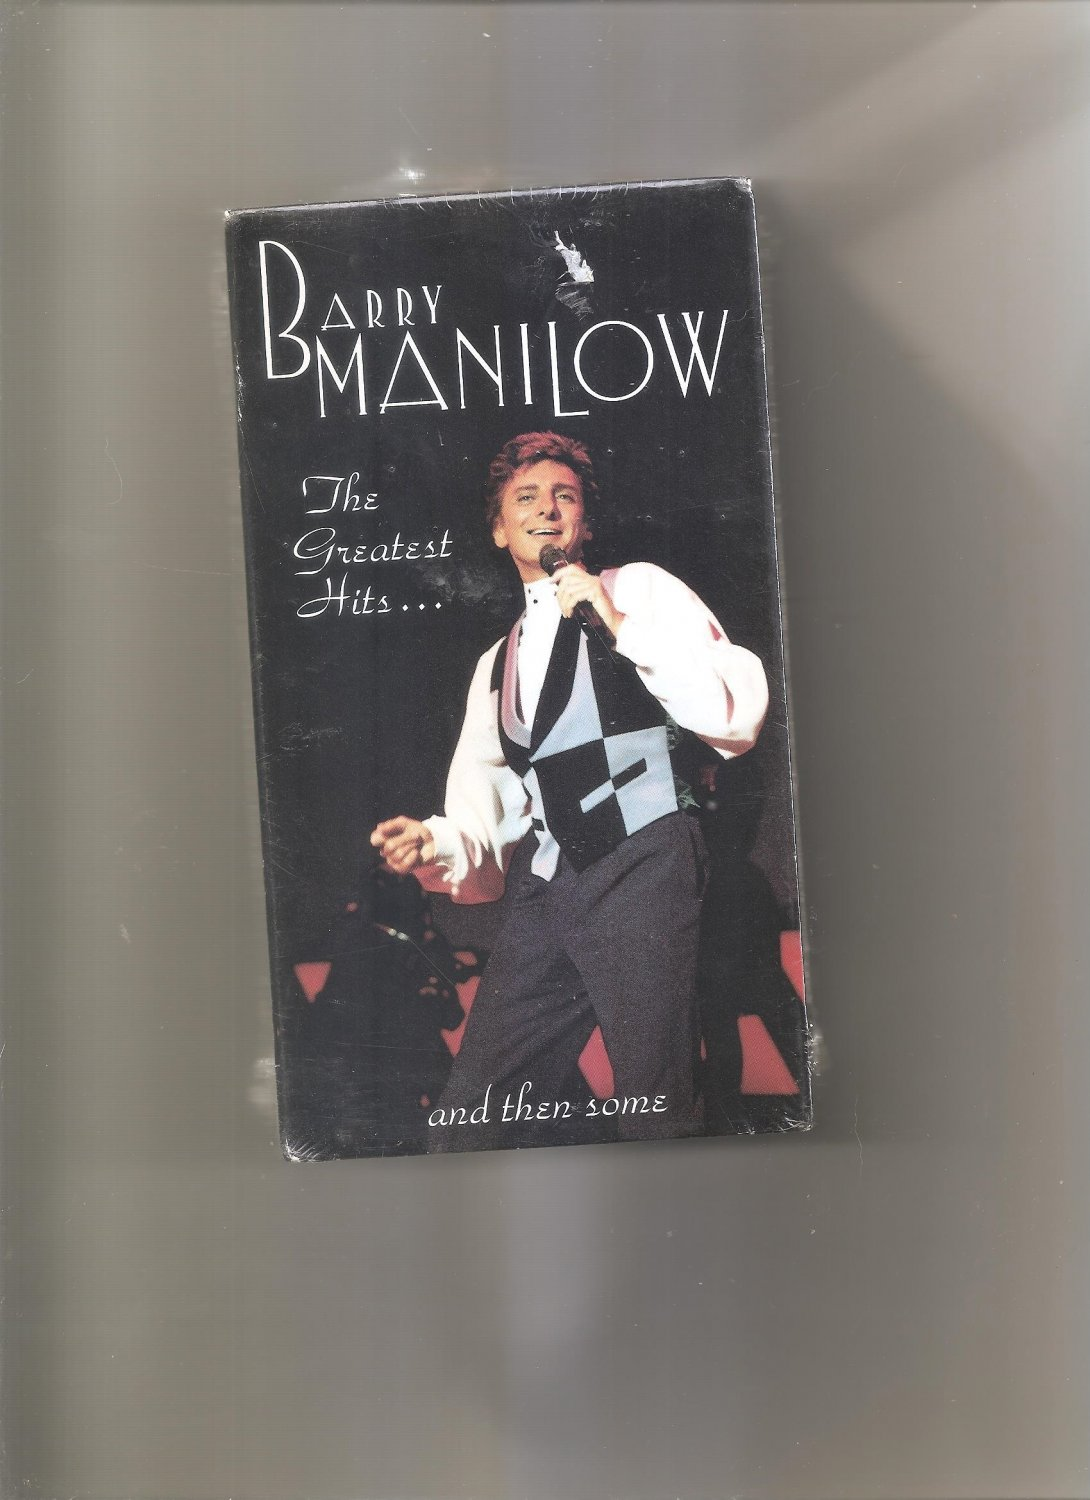 Barry Manilow Greatest Hits Tour VHS